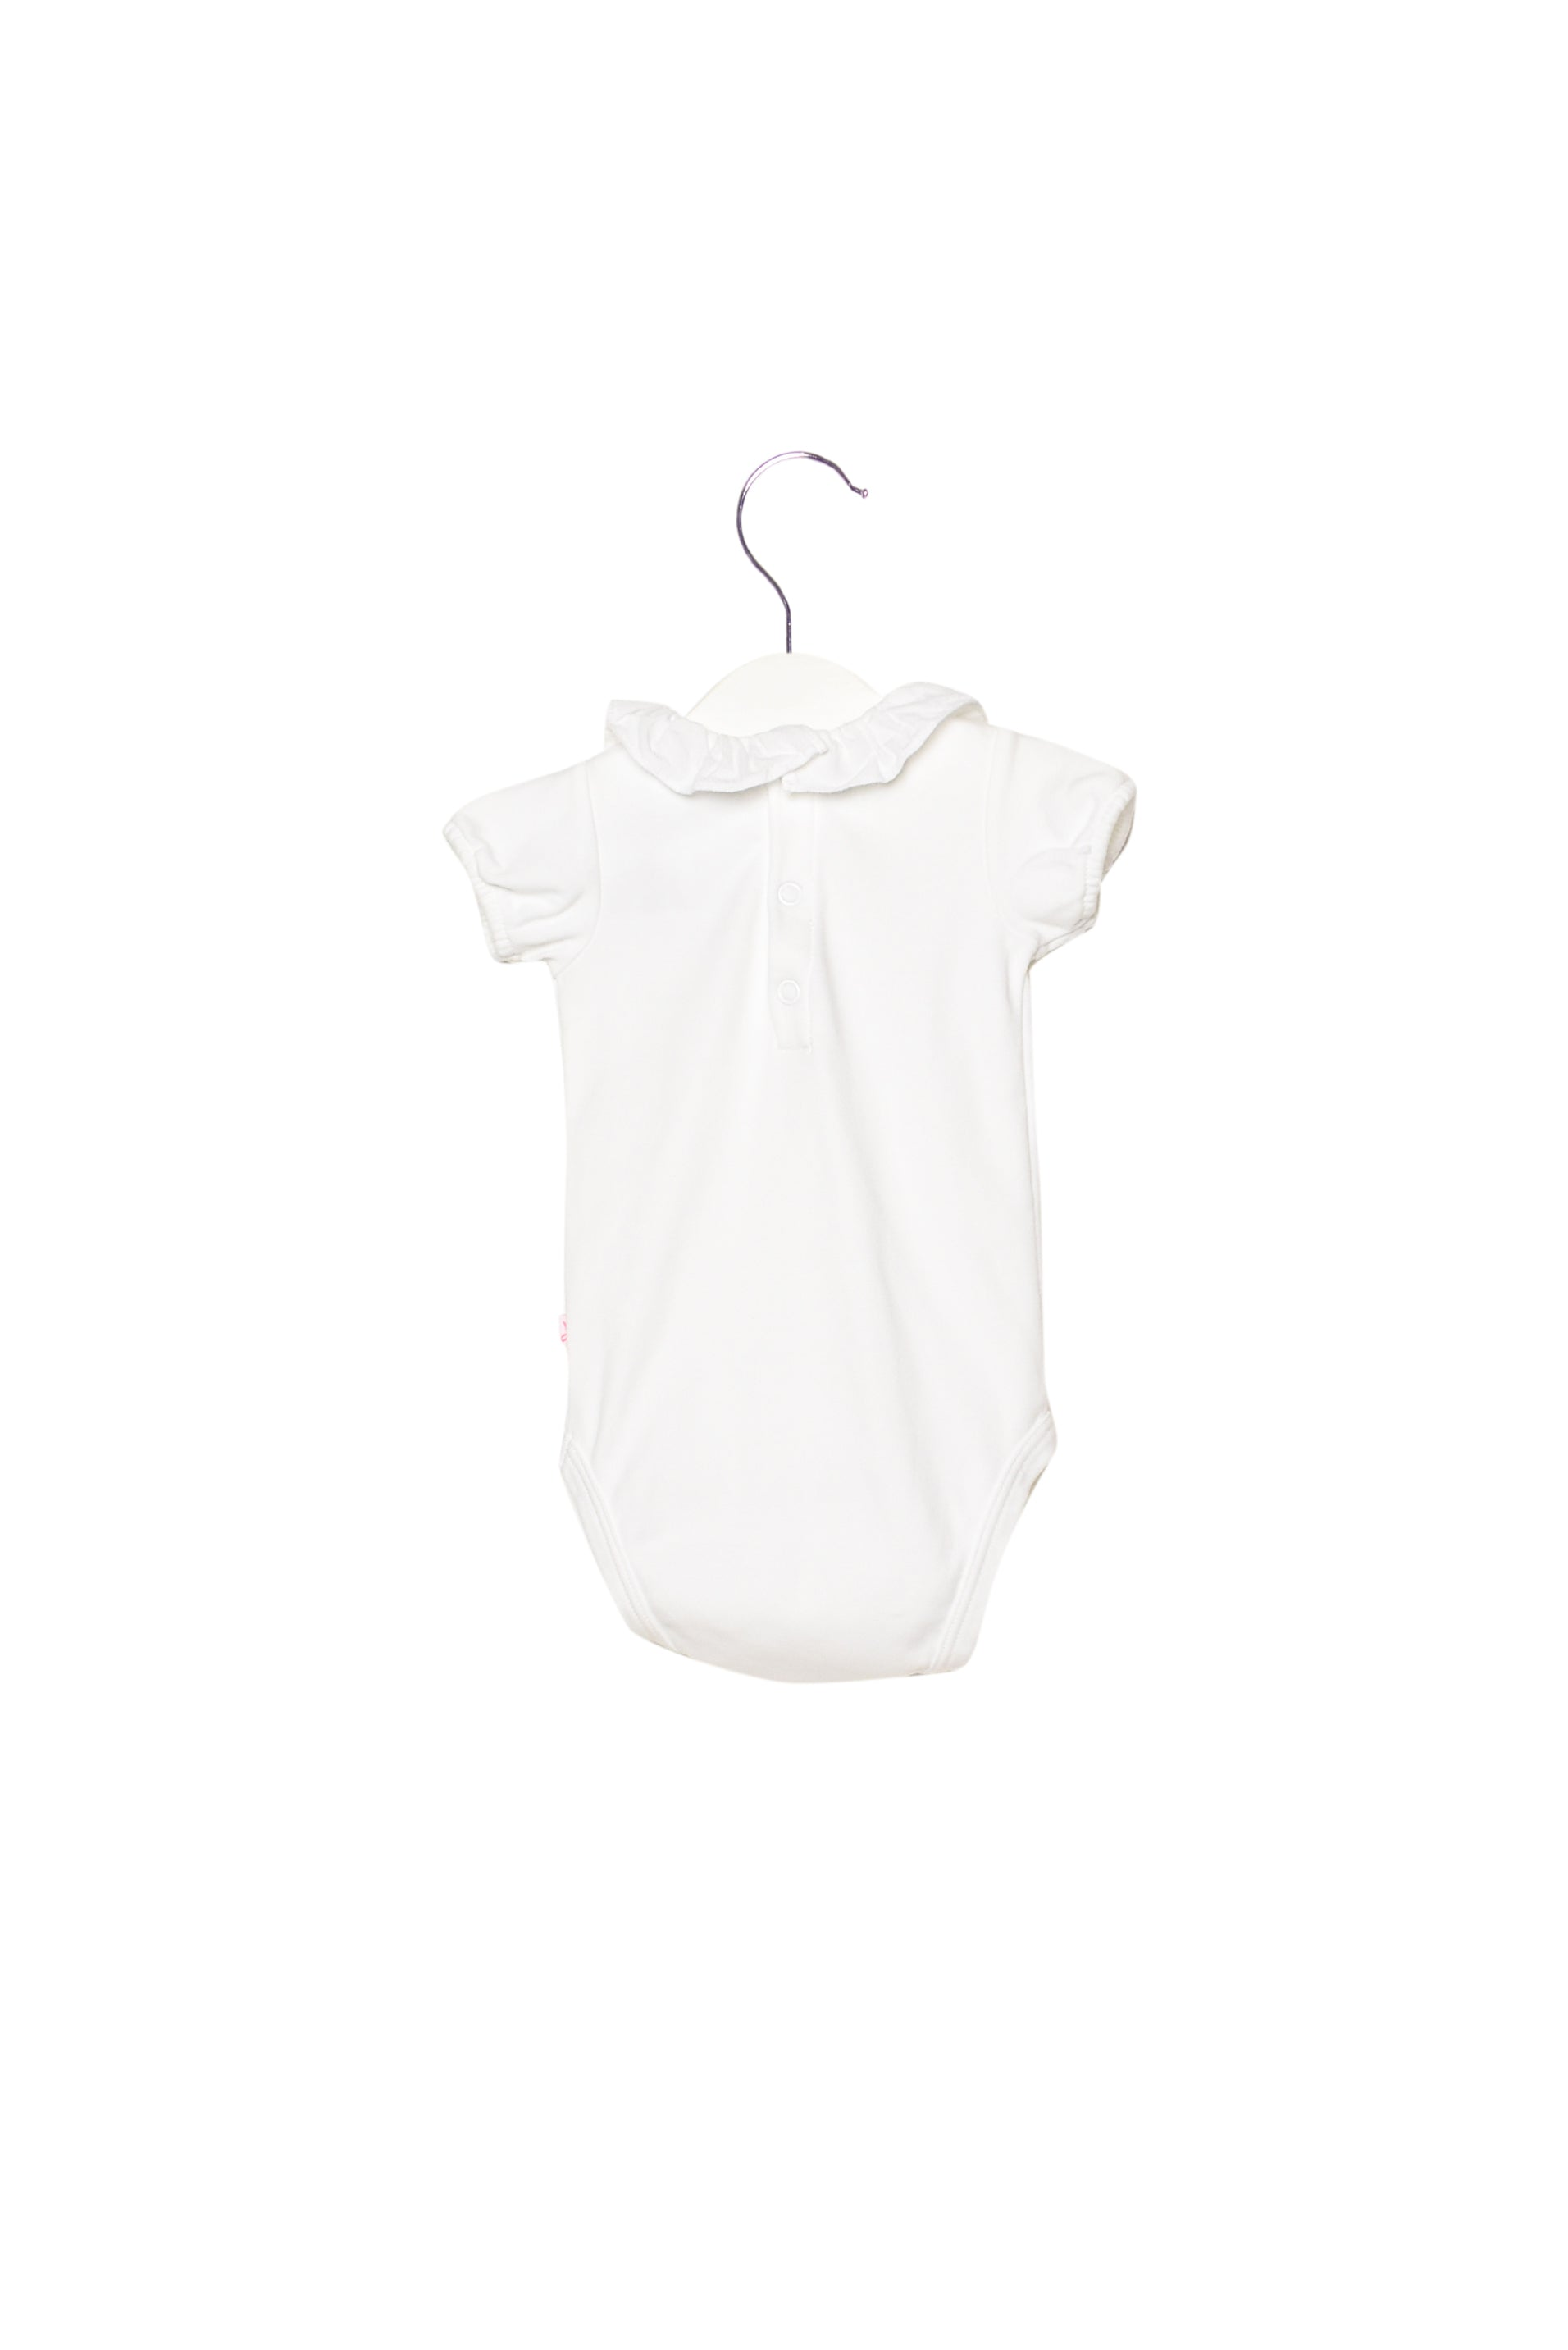 10012019 Jacadi Baby ~ Bodysuit 3M at Retykle